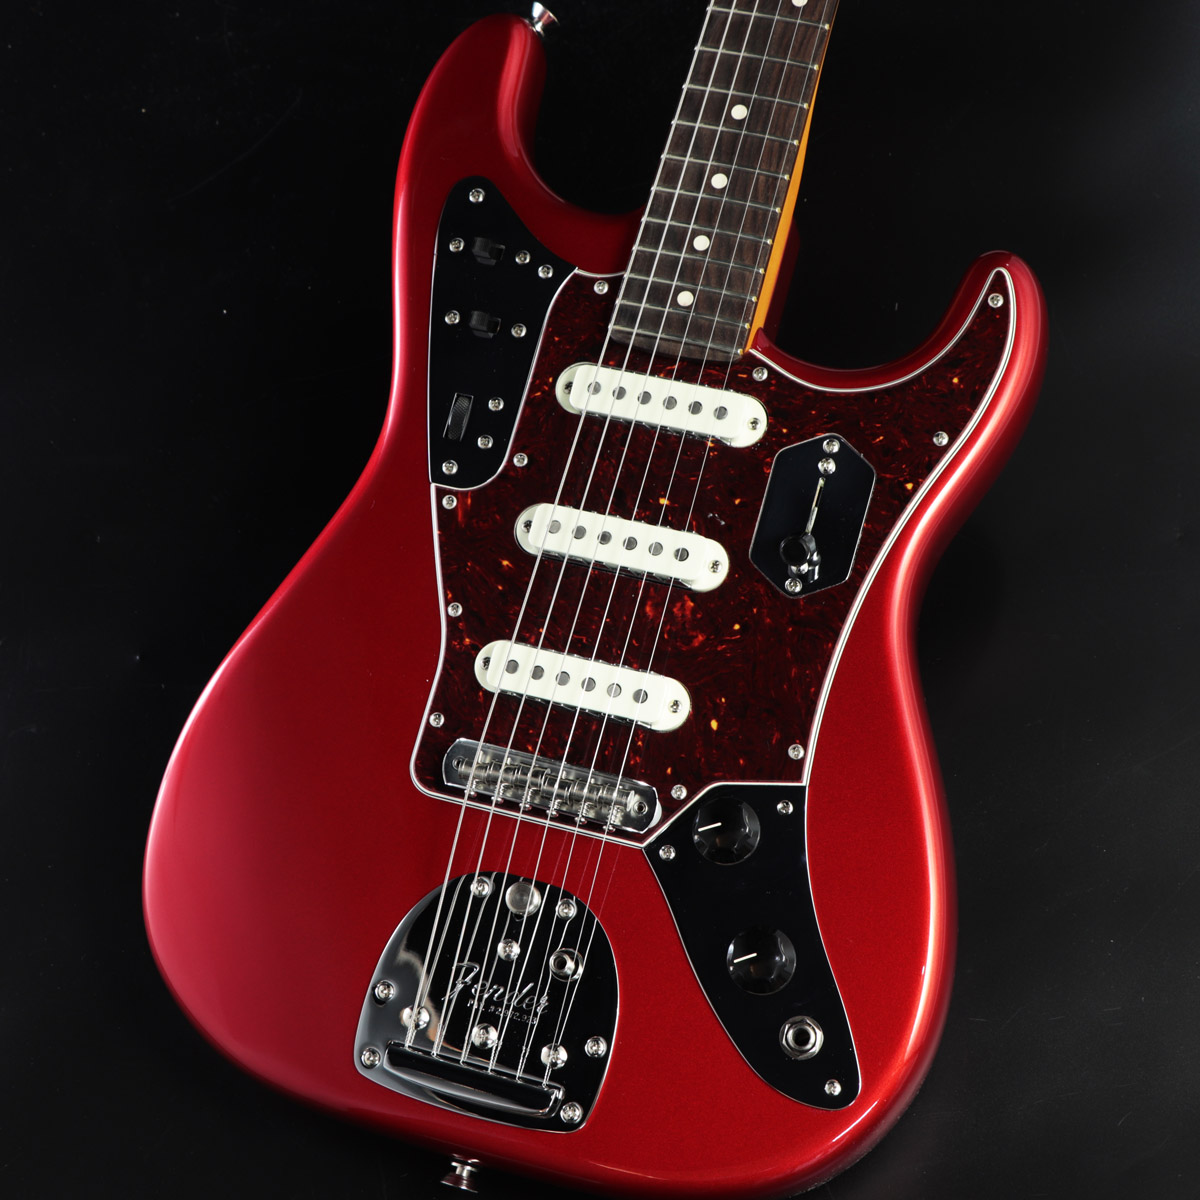 Fender USA / Parallel Universe Limited Edition Jaguar Strat Candy Apple Red フェンダー【S/N US18012393】【心斎橋店】